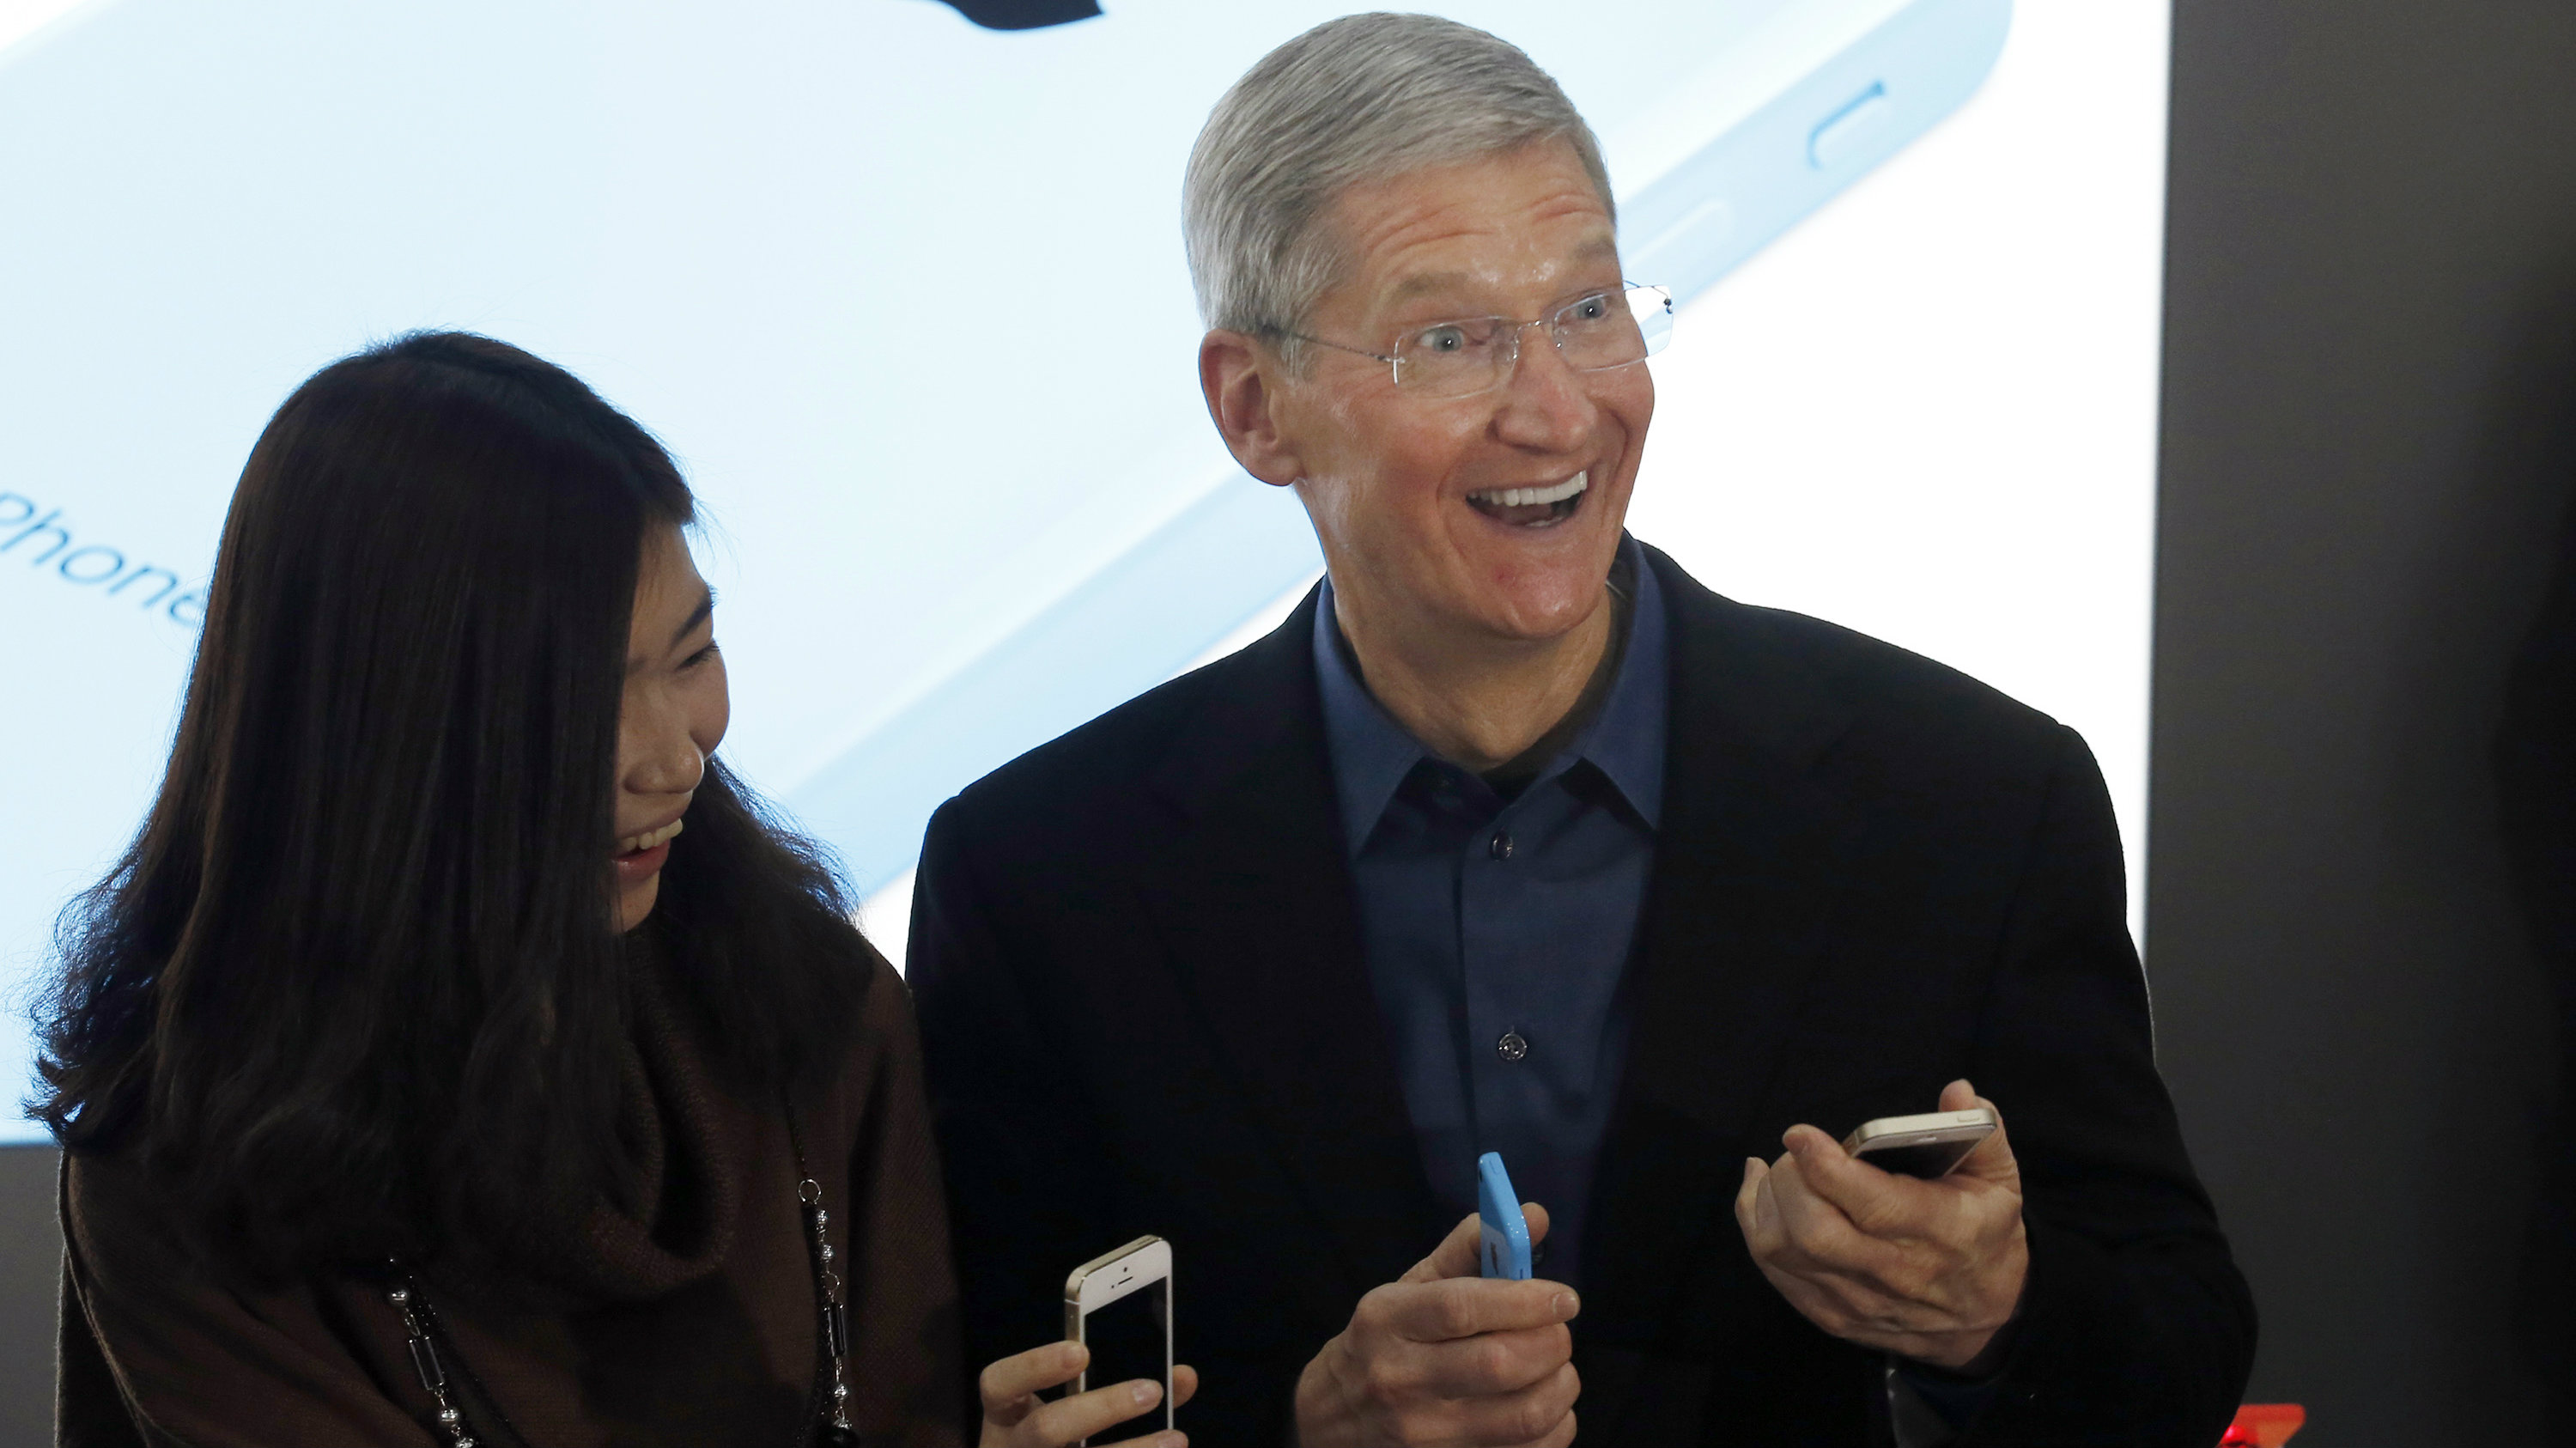 Apple Inc. CEO Tim Cook reacts as he shows his iPhones while posing with a customer at an event celebrating the launch of Apple's iPhone on China Mobile's network at a China Mobile shop in Beijing January 17, 2014. Apple Inc is finally launching its iPhone on China Mobile Ltd's vast network on Friday, opening the door to the world's largest carrier's 763 million subscribers and giving its China sales a short-term jolt.